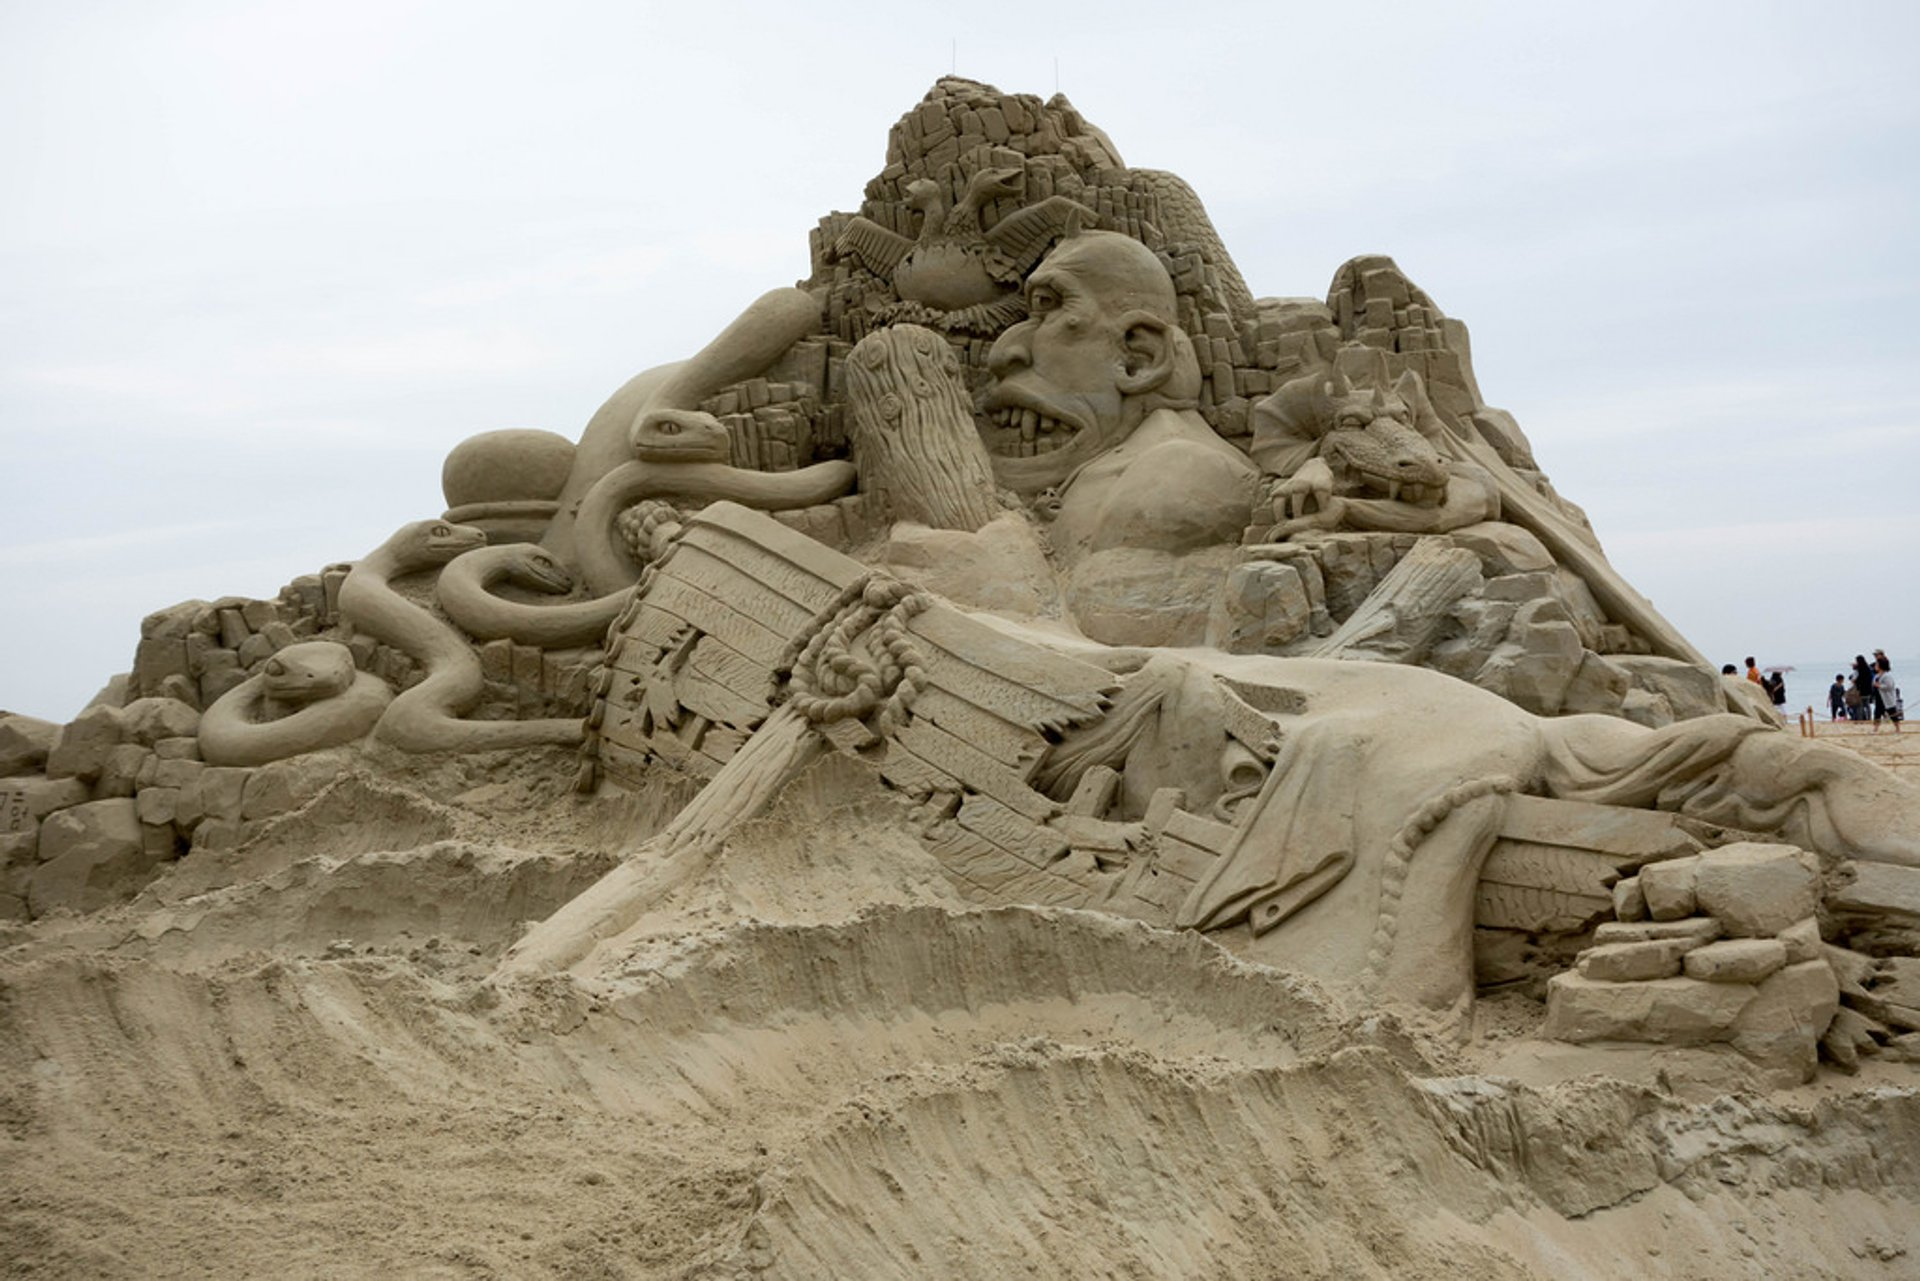 Best time for Haeundae Sand Festival in South Korea 2020